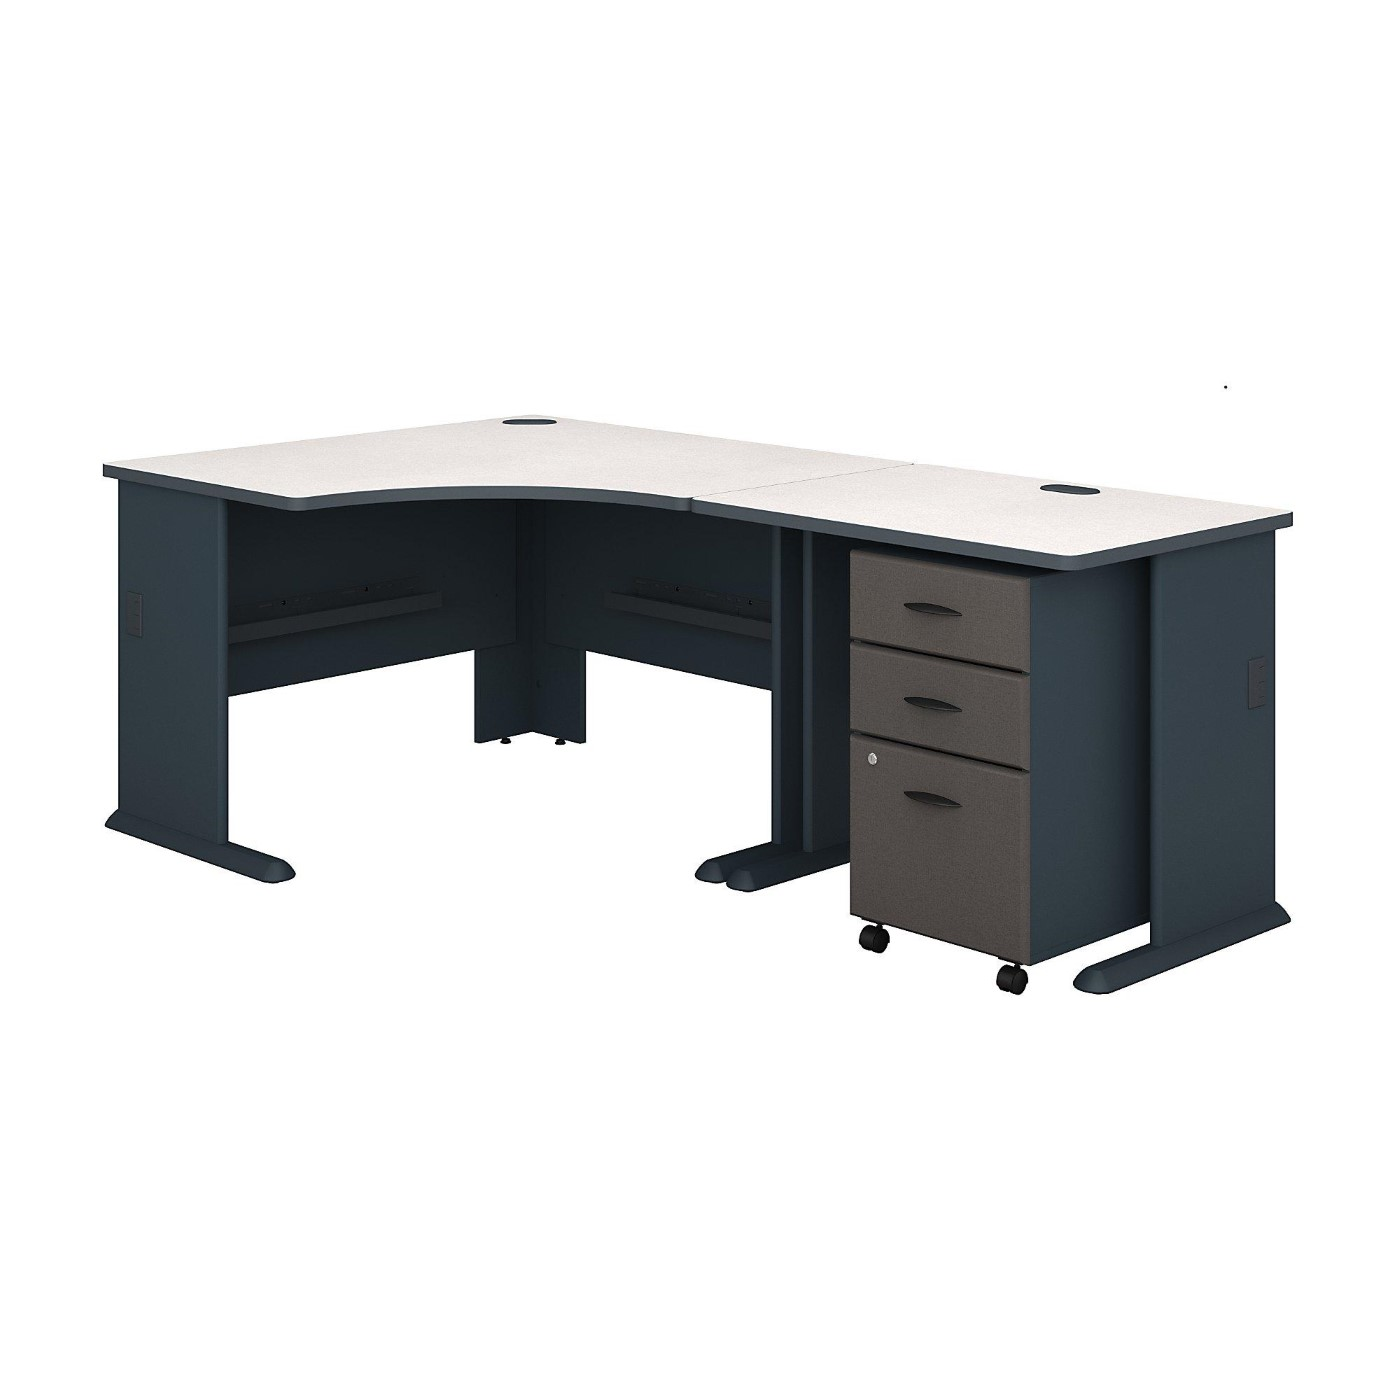 BUSH BUSINESS FURNITURE SERIES A 48W CORNER DESK WITH 36W RETURN AND MOBILE FILE CABINET. FREE SHIPPING.